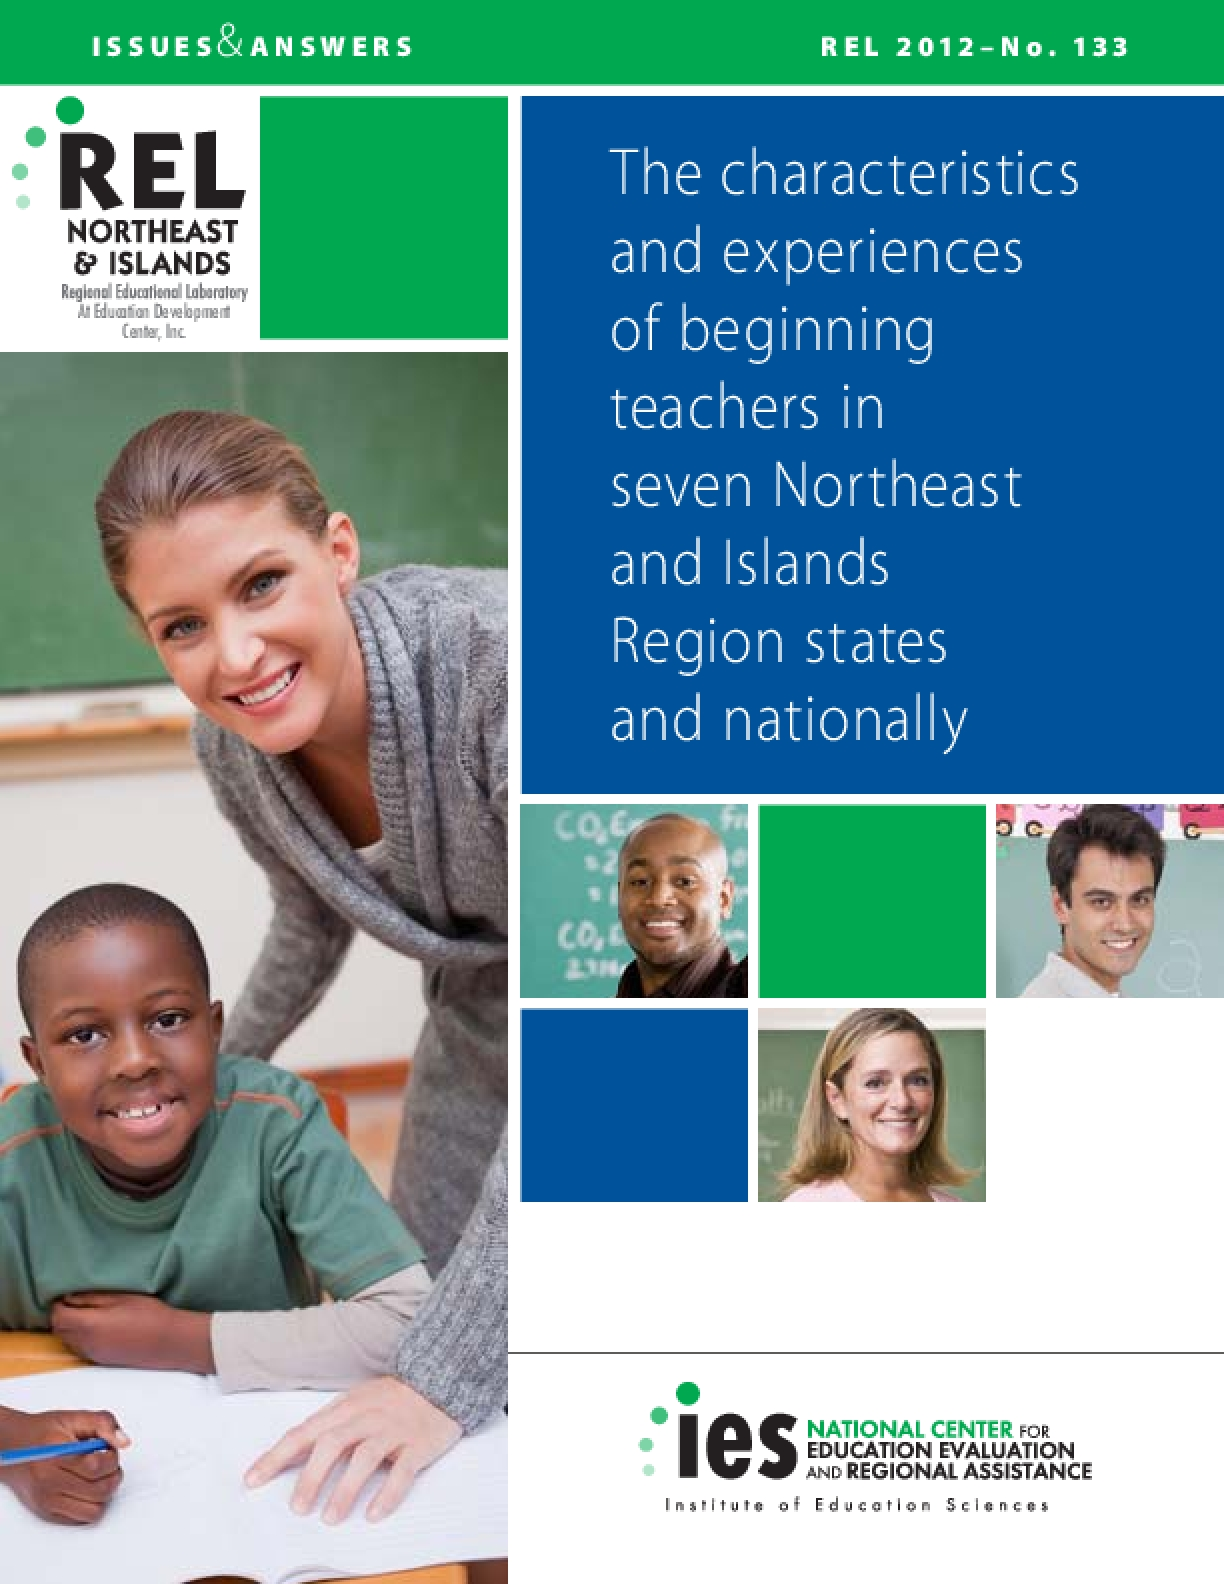 The Characteristics and Experiences of Beginning Teachers in Seven Northeast and Islands Region States and Nationally